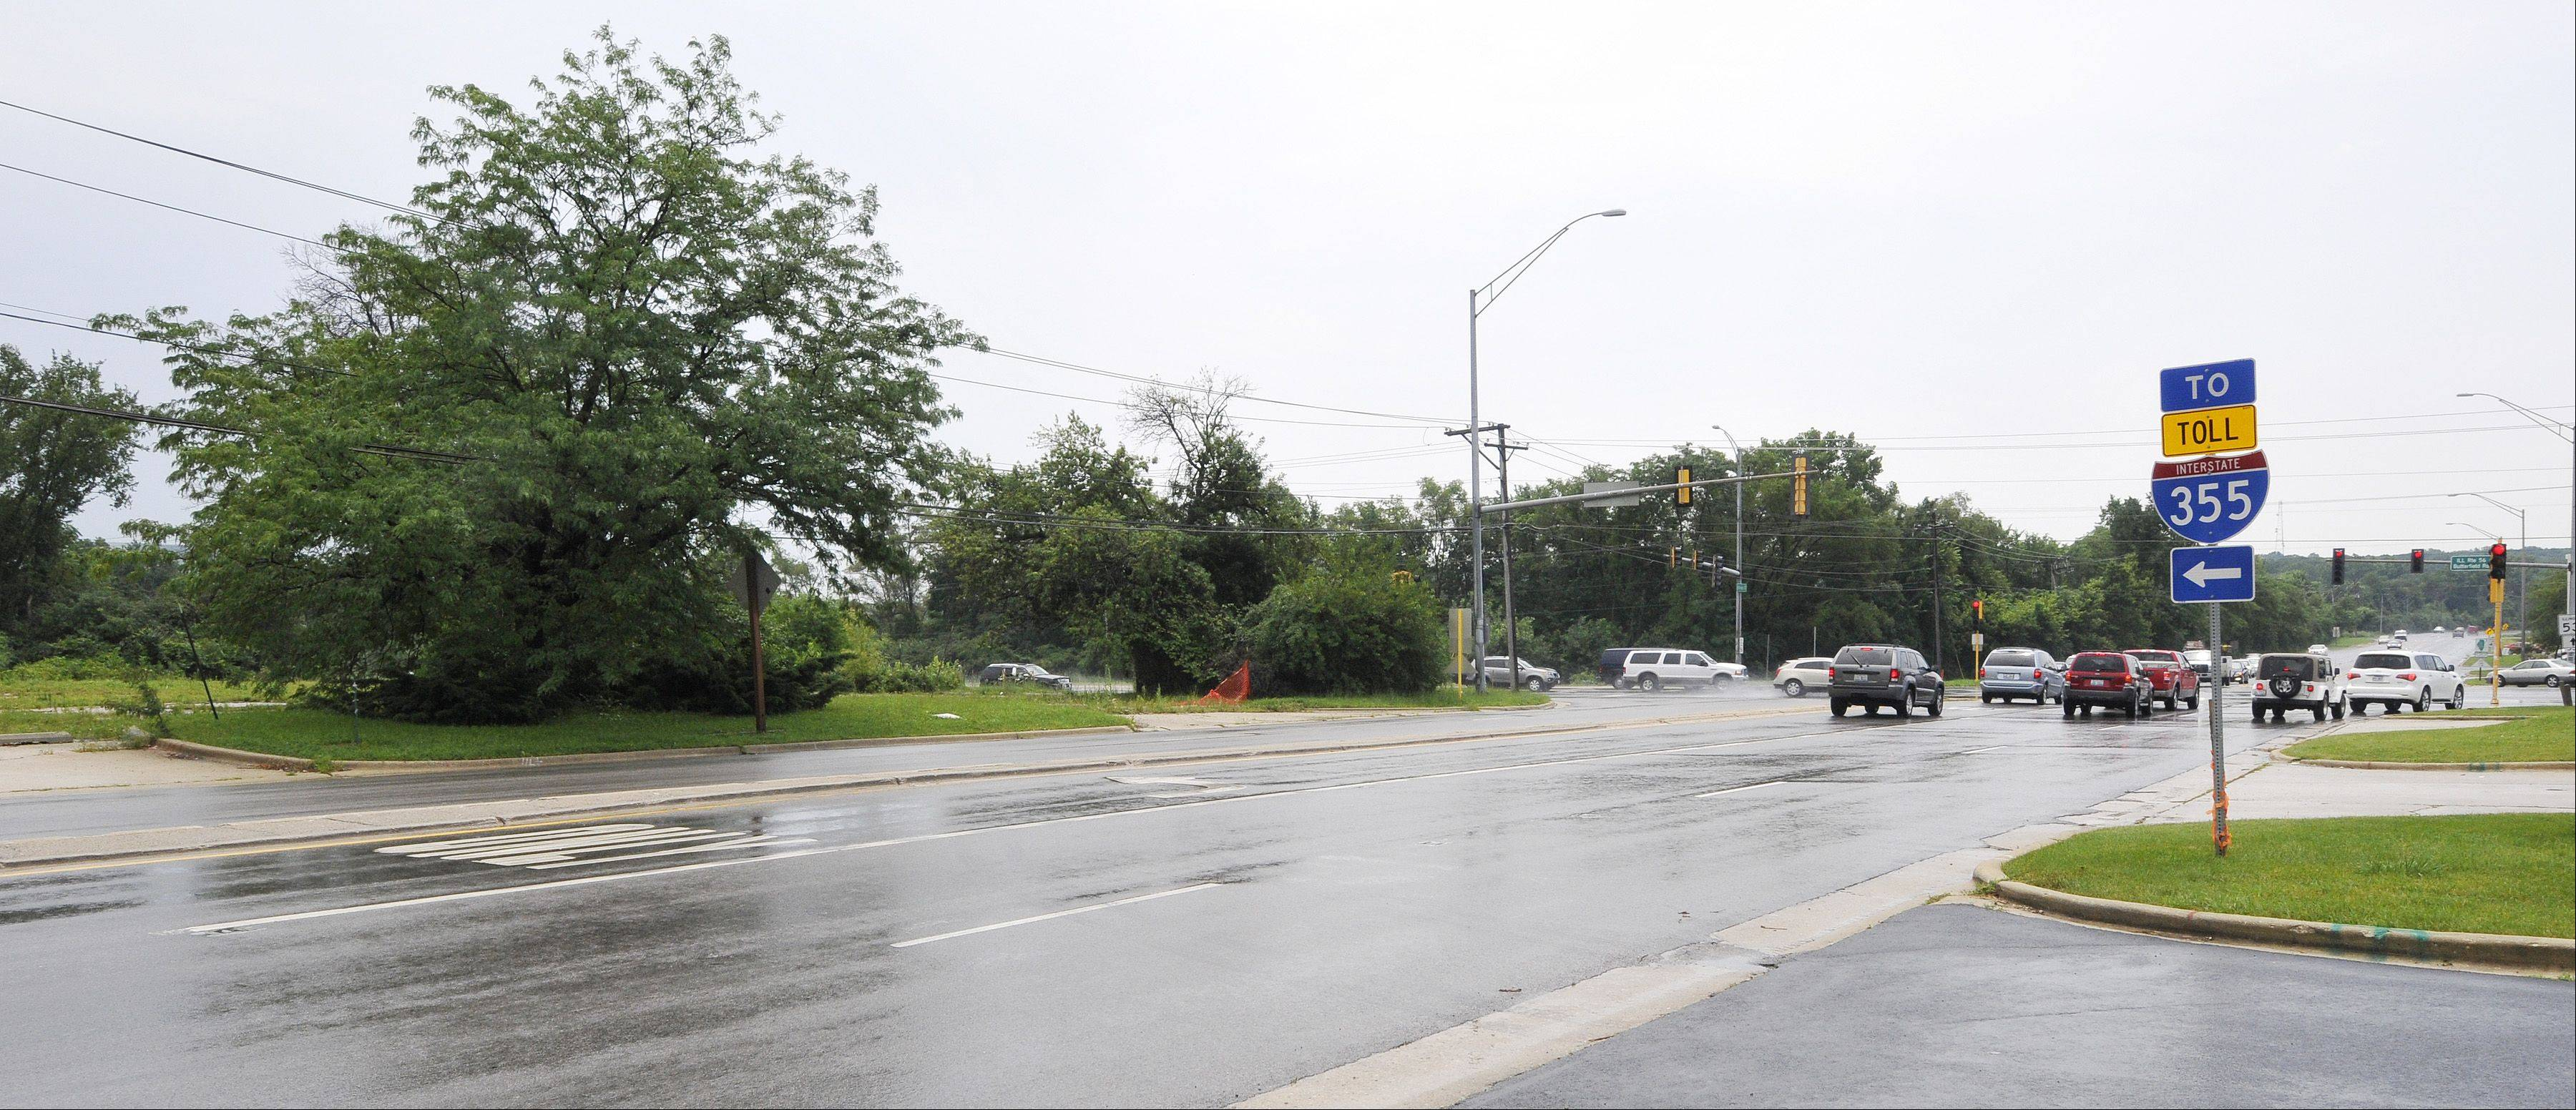 The DuPage County zoning board of appeals has recommended approval of plans for a gas station, convenience store and car wash at the northeast corner of Route 53 and Butterfield Road in an unincorporated area near Glen Ellyn.